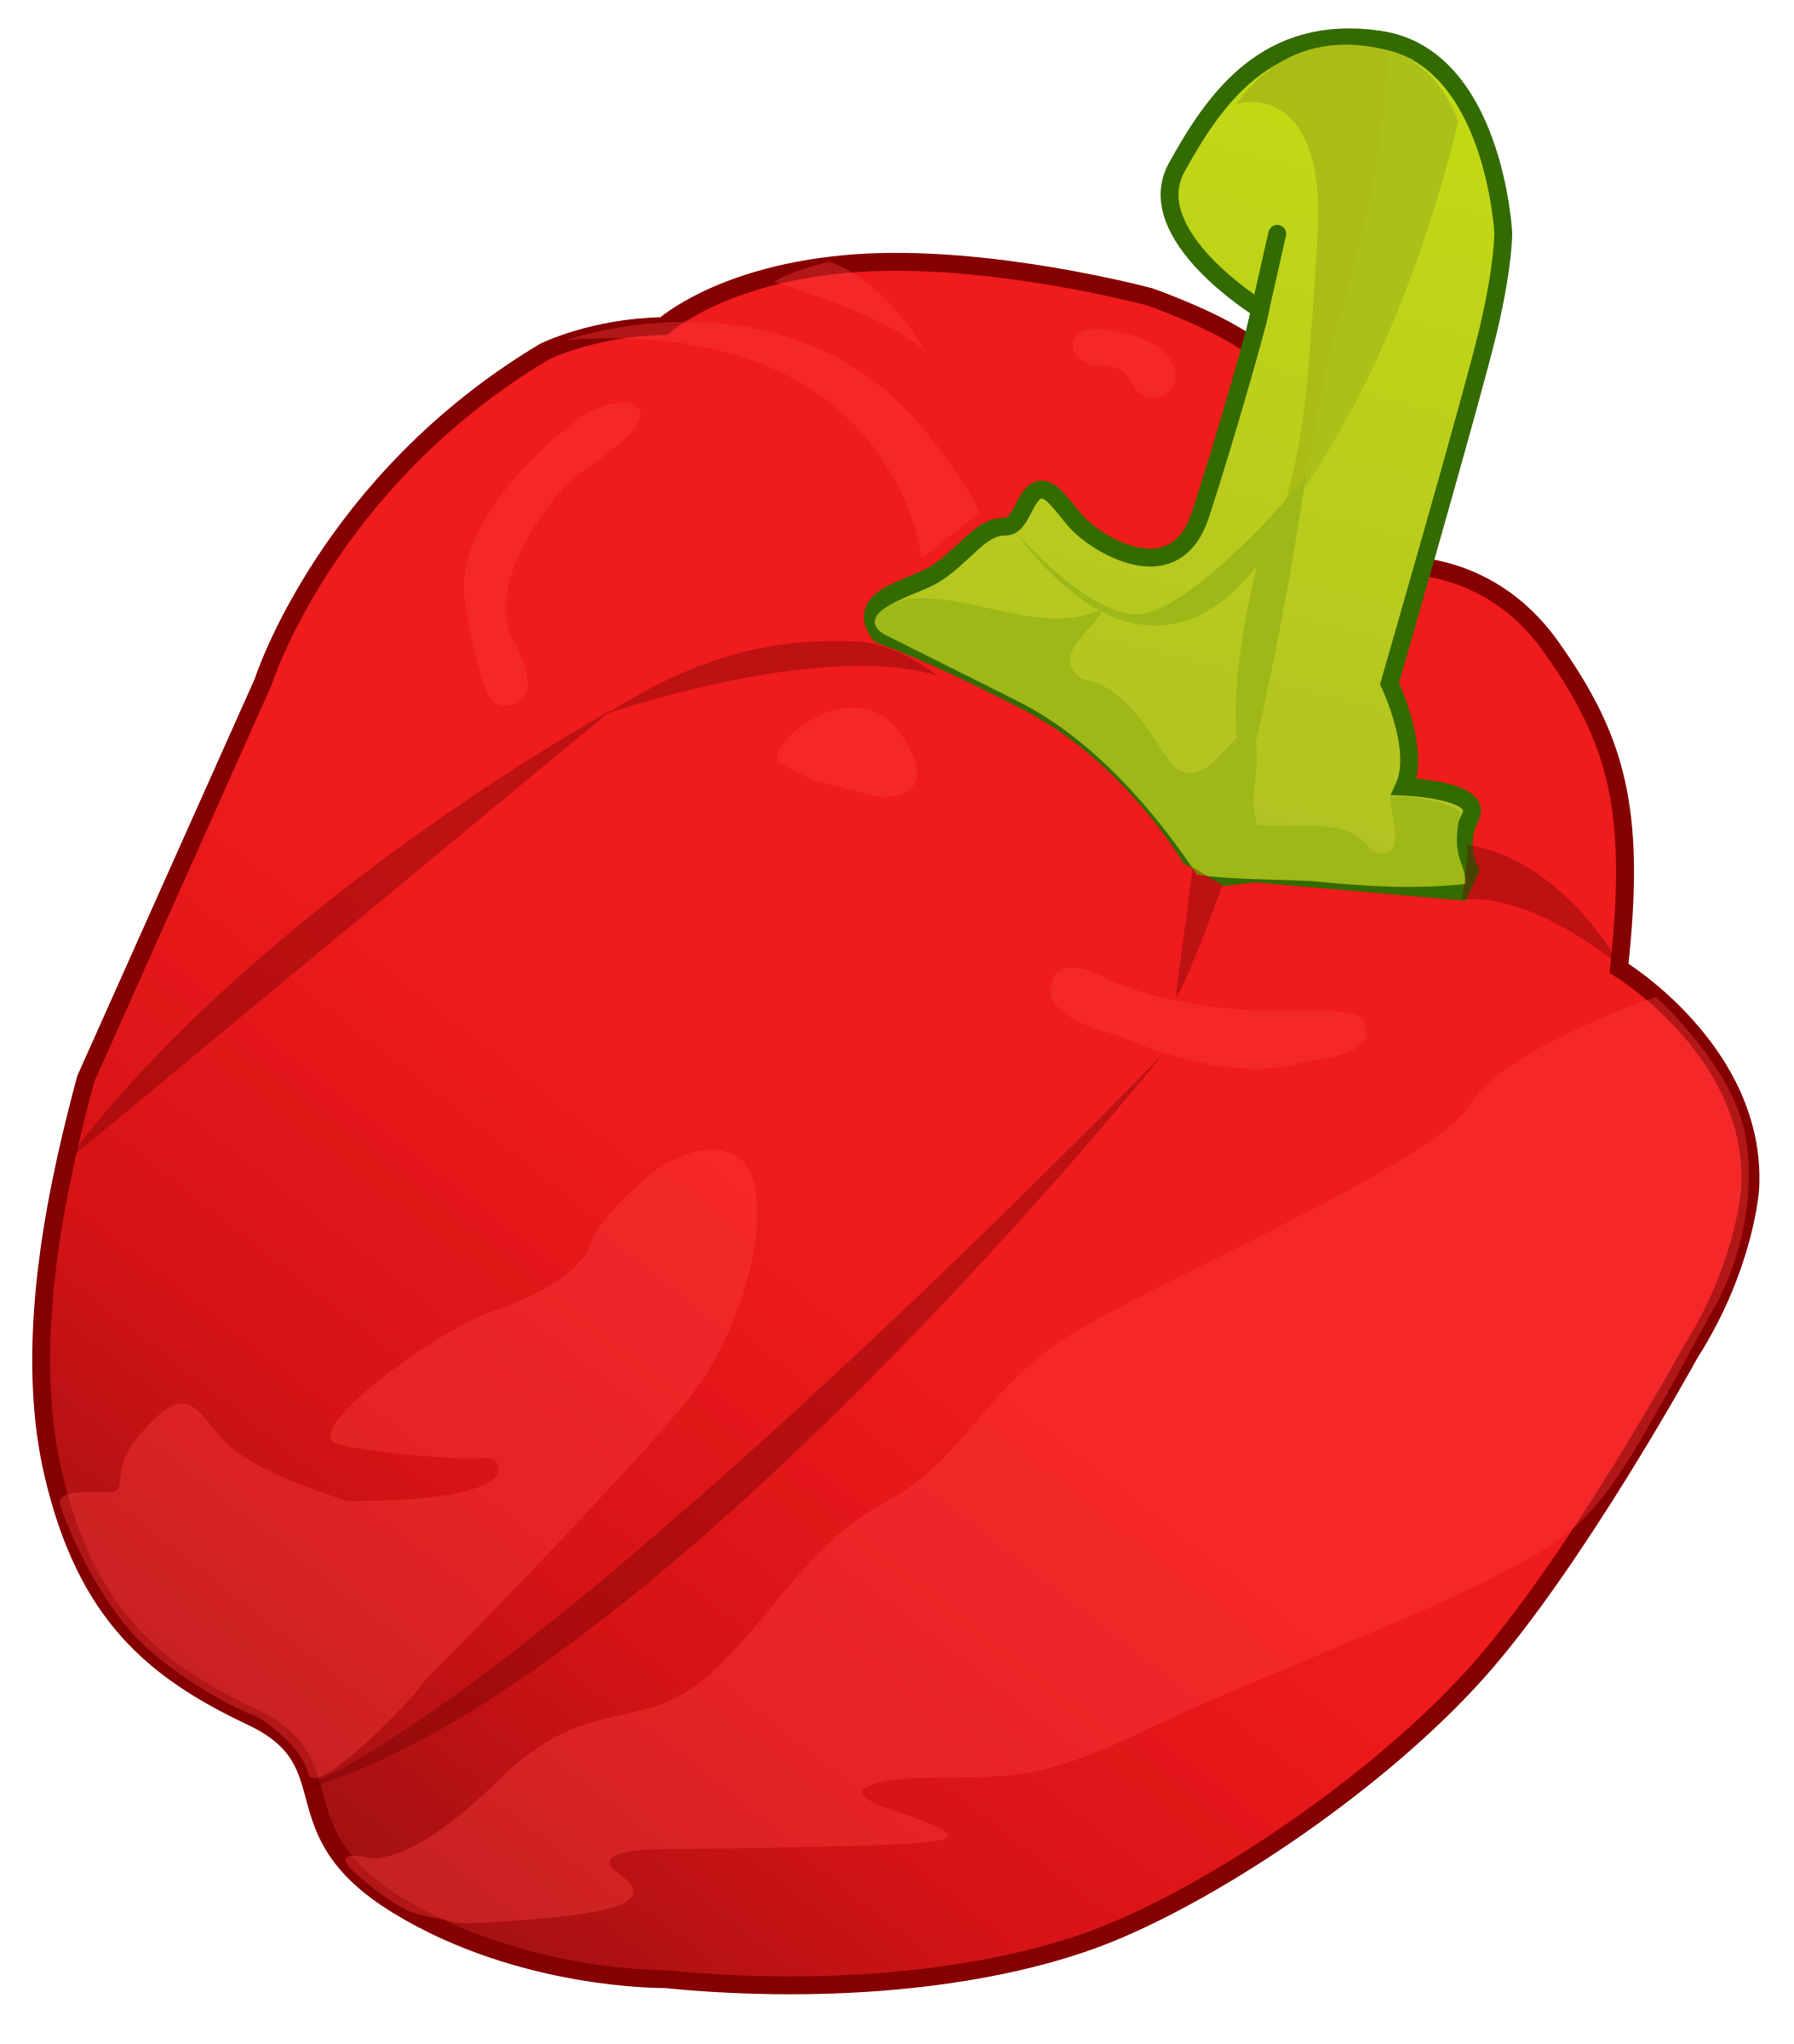 Peppers clipart yellow pepper. Red icons png free